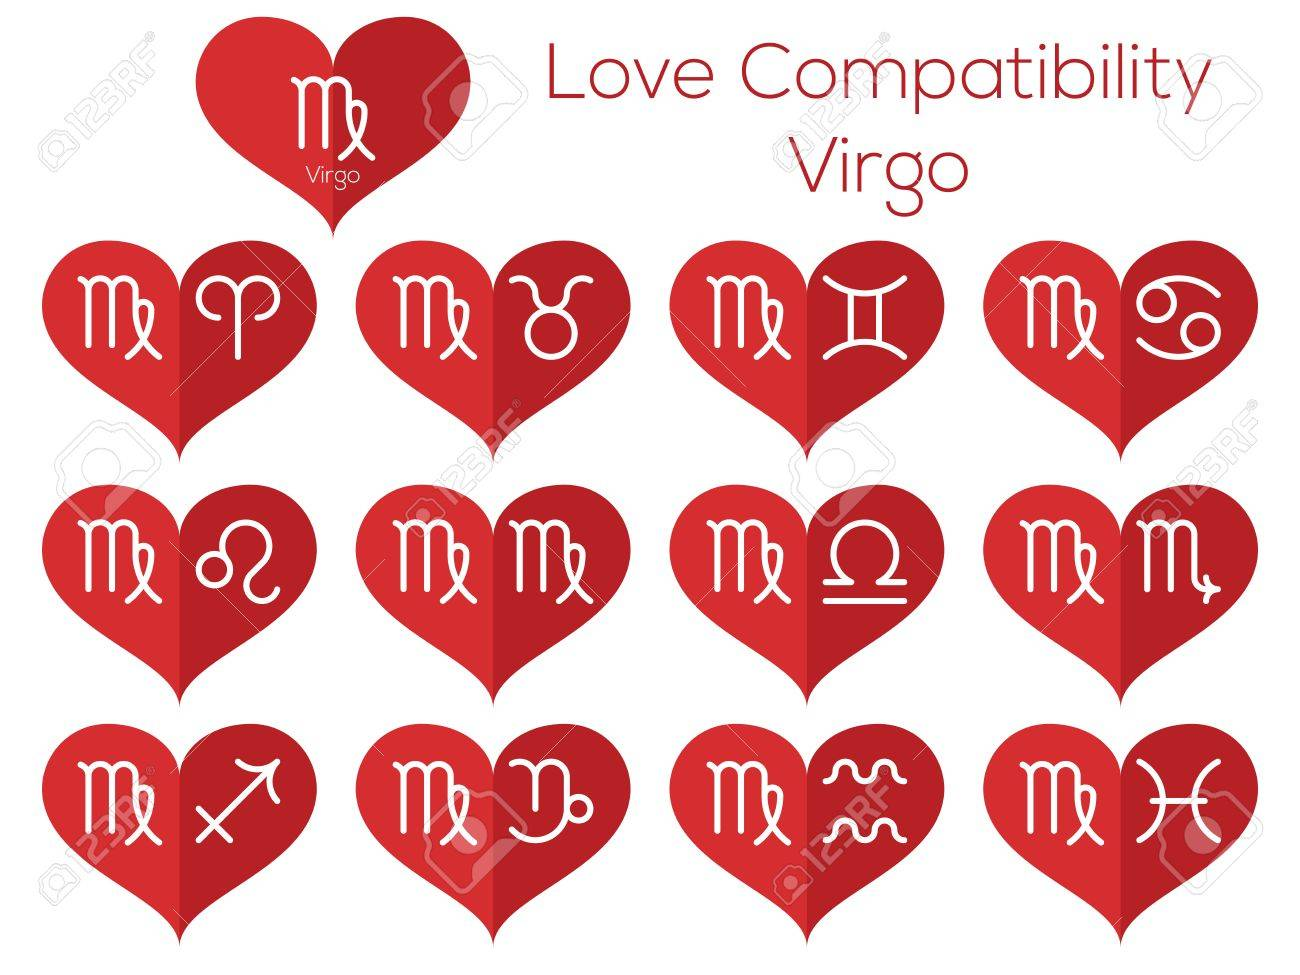 virgoe signe compatible amour